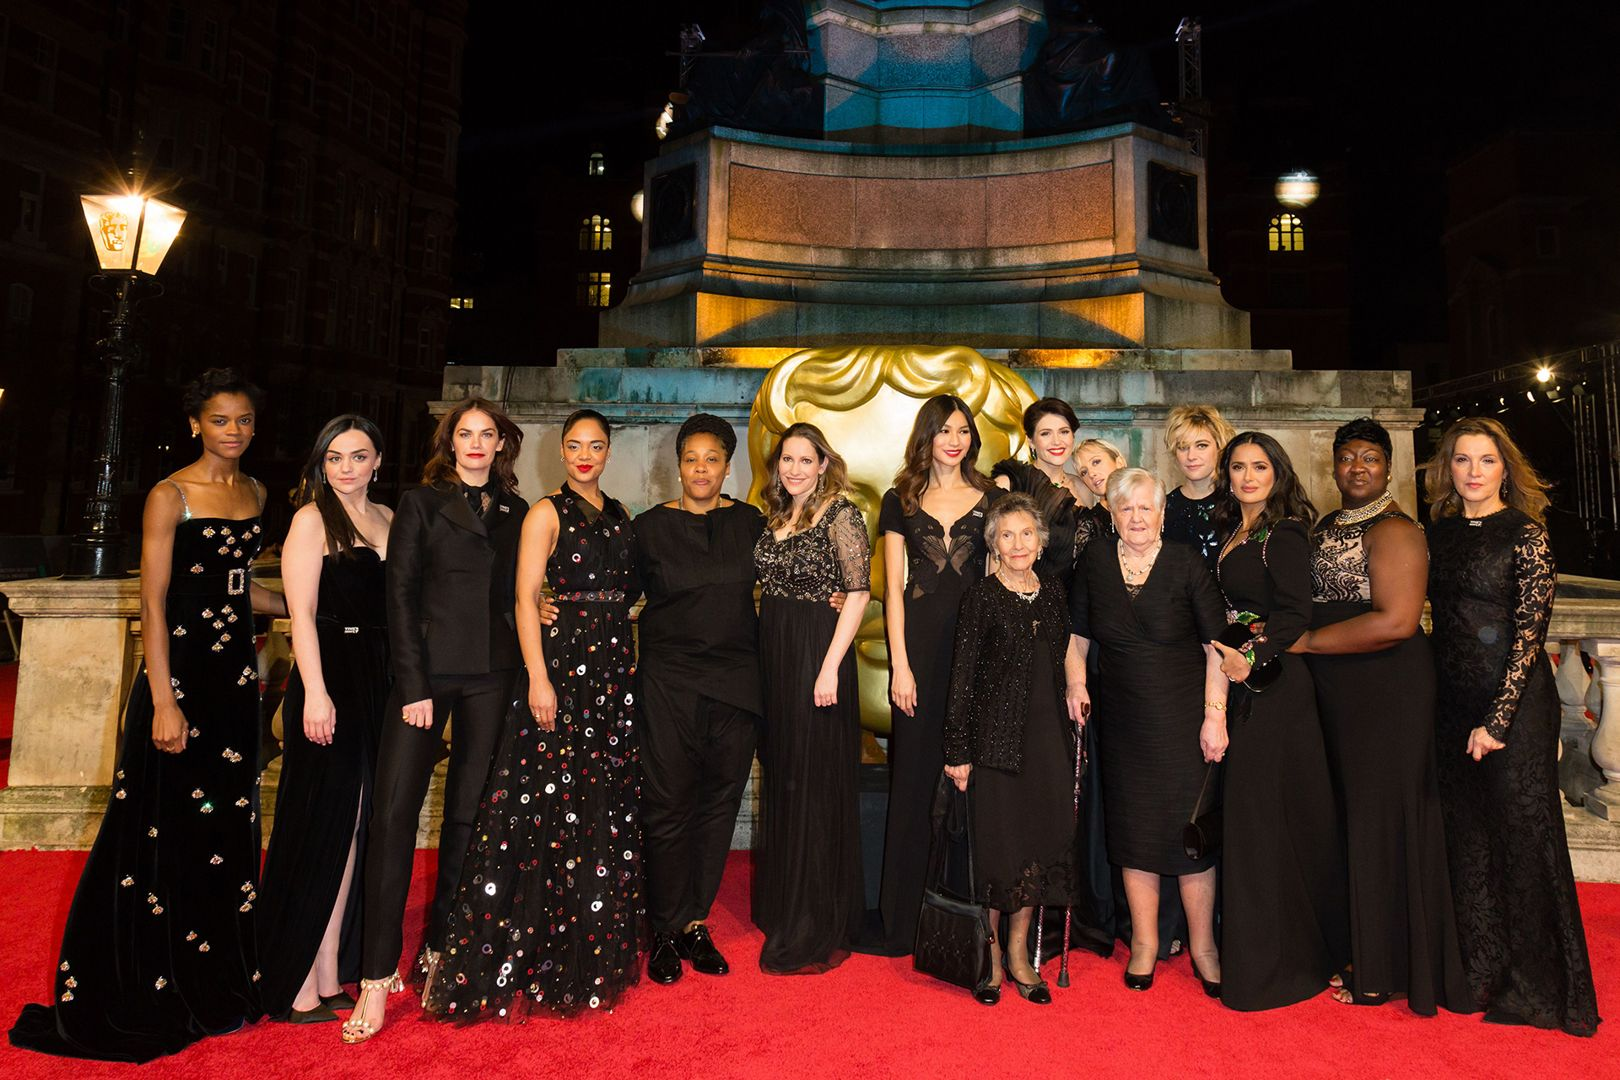 .@BAFTAs: All the moments you might have missed: https://t.co/a1ehZaJW3T  #BAFTA2018 https://t.co/UjKBiDsTS5